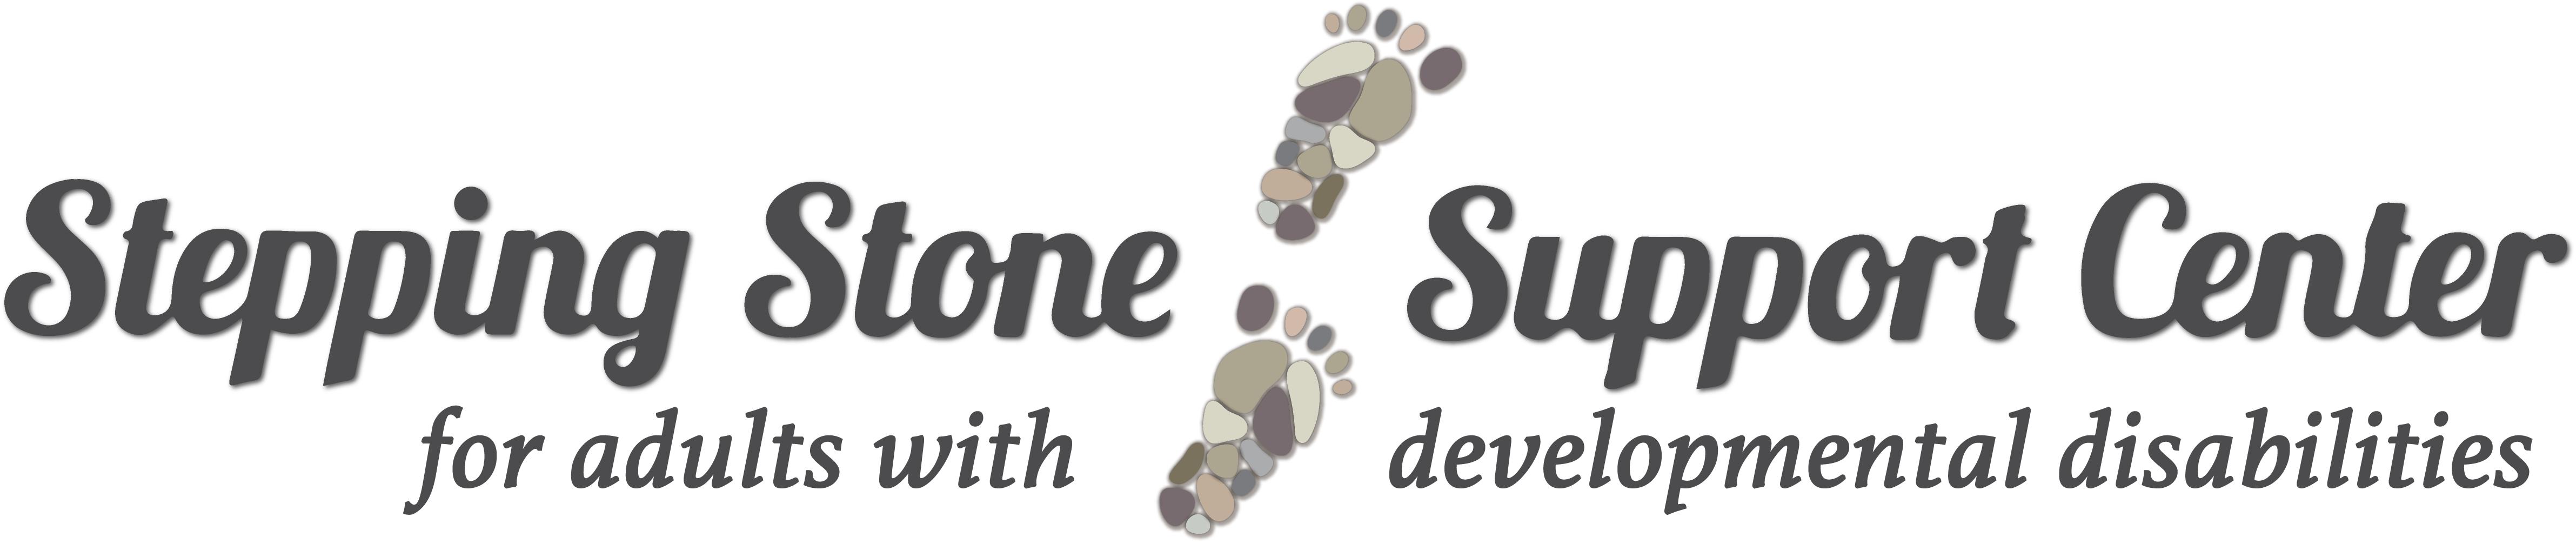 Stepping Stone Support Center Header Logo